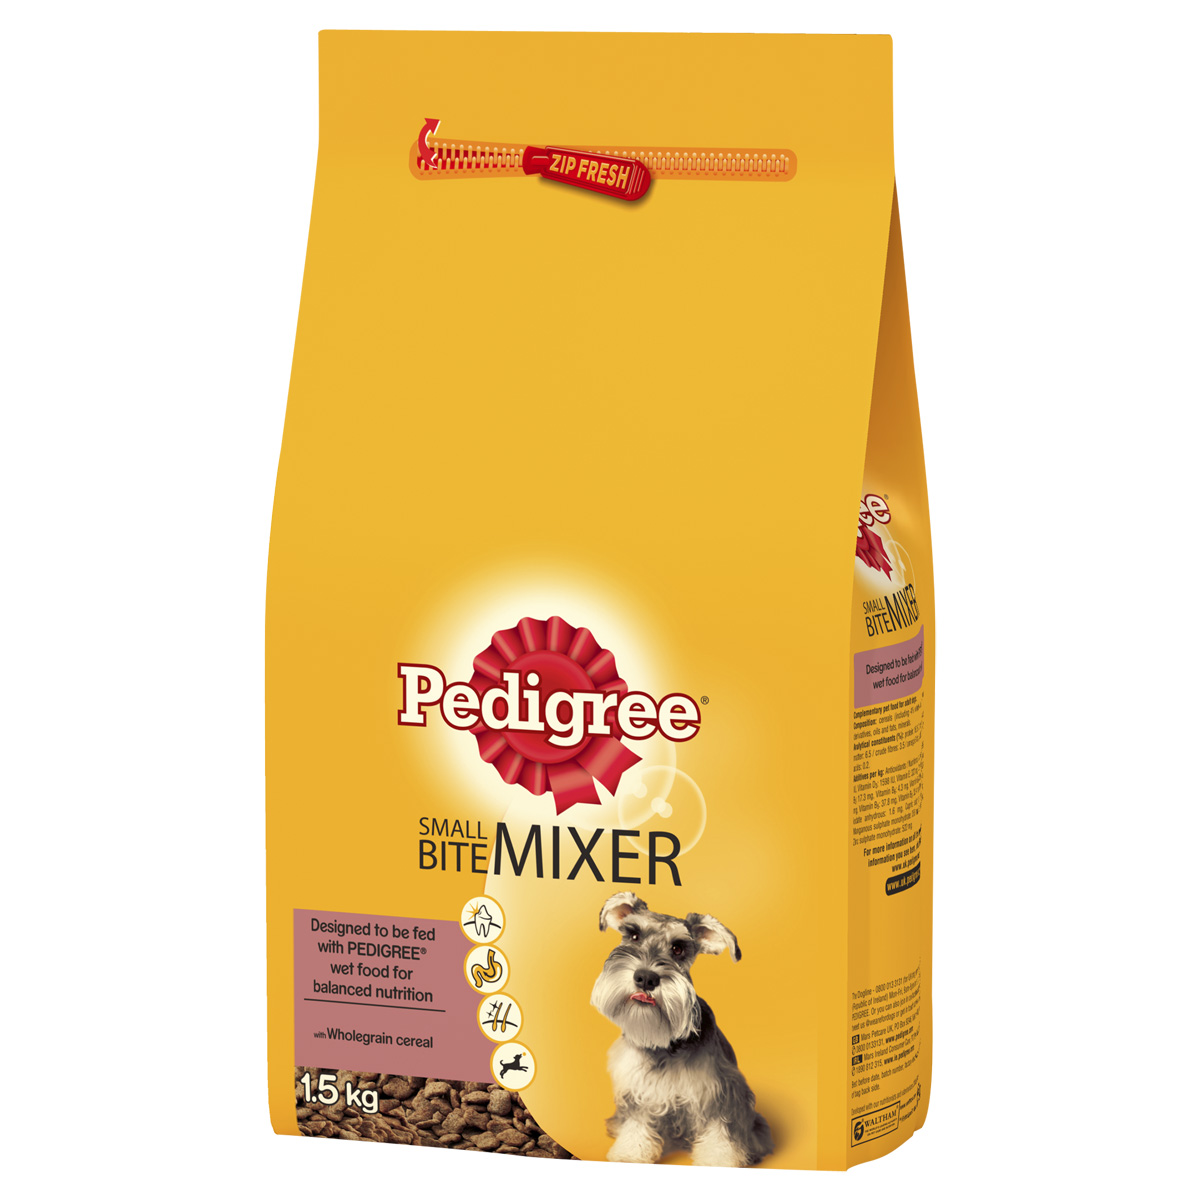 Pedigree Small Bite Mixer Dog Food